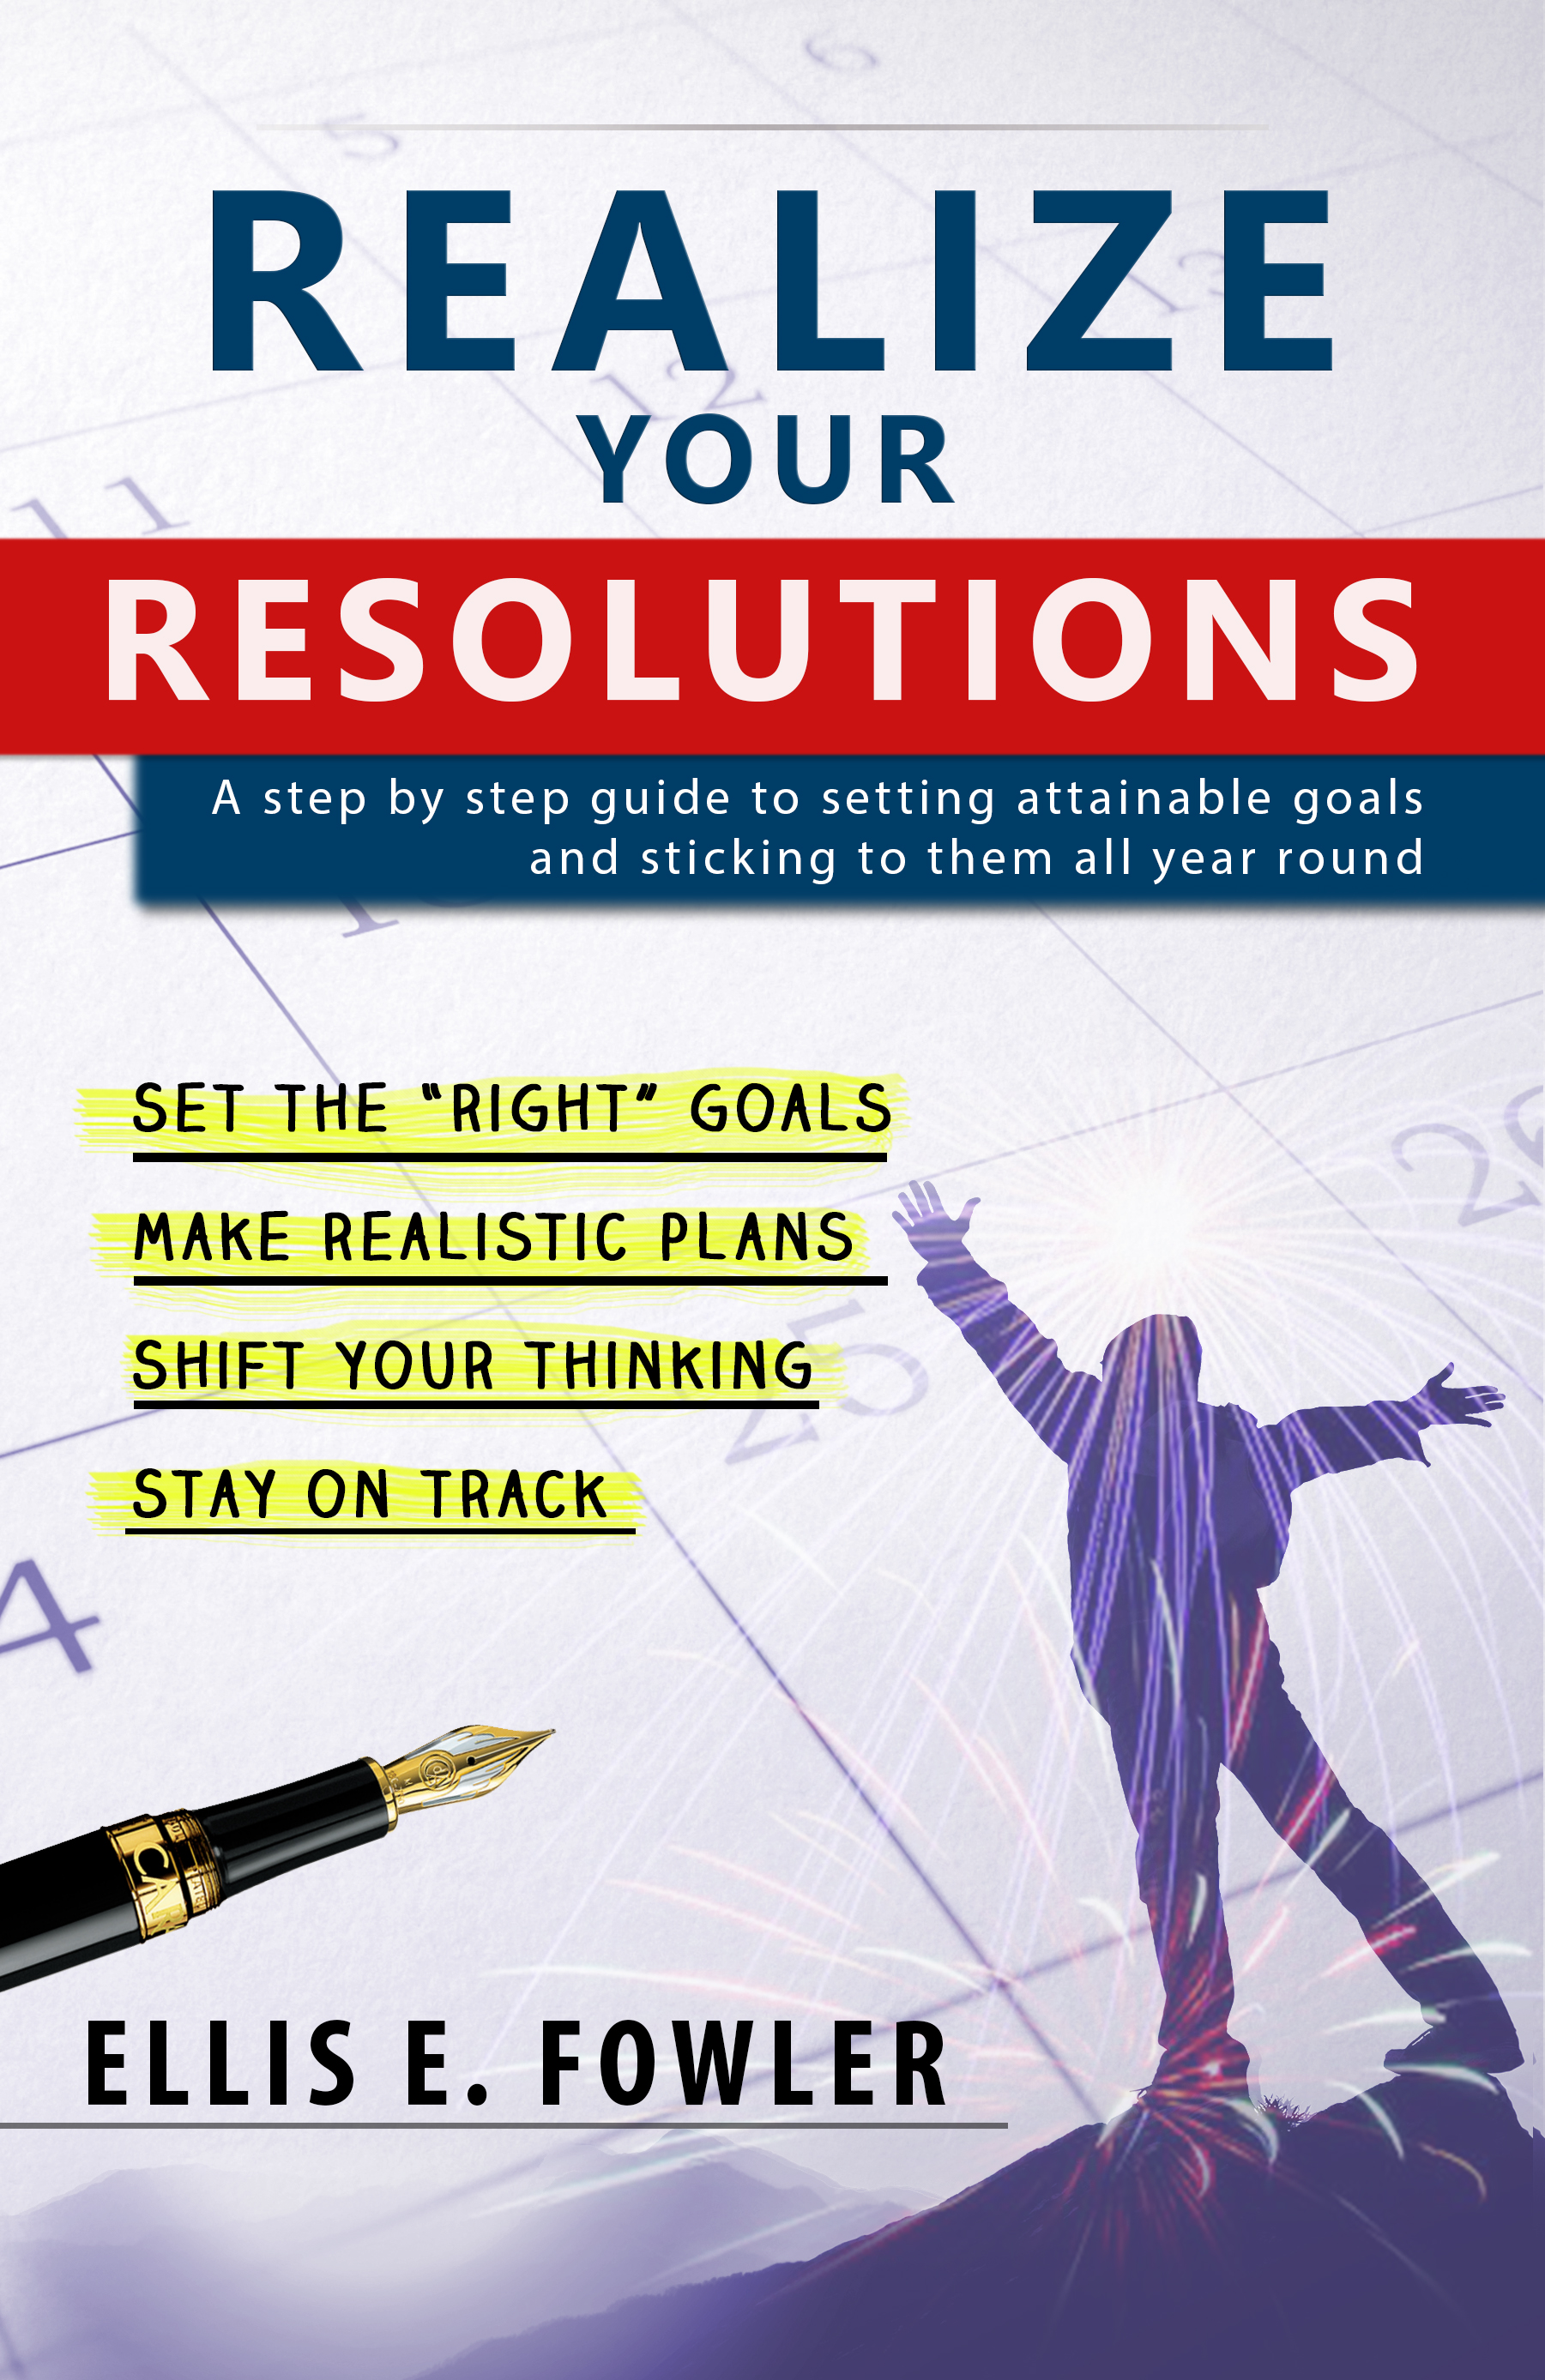 Realize your resolutions